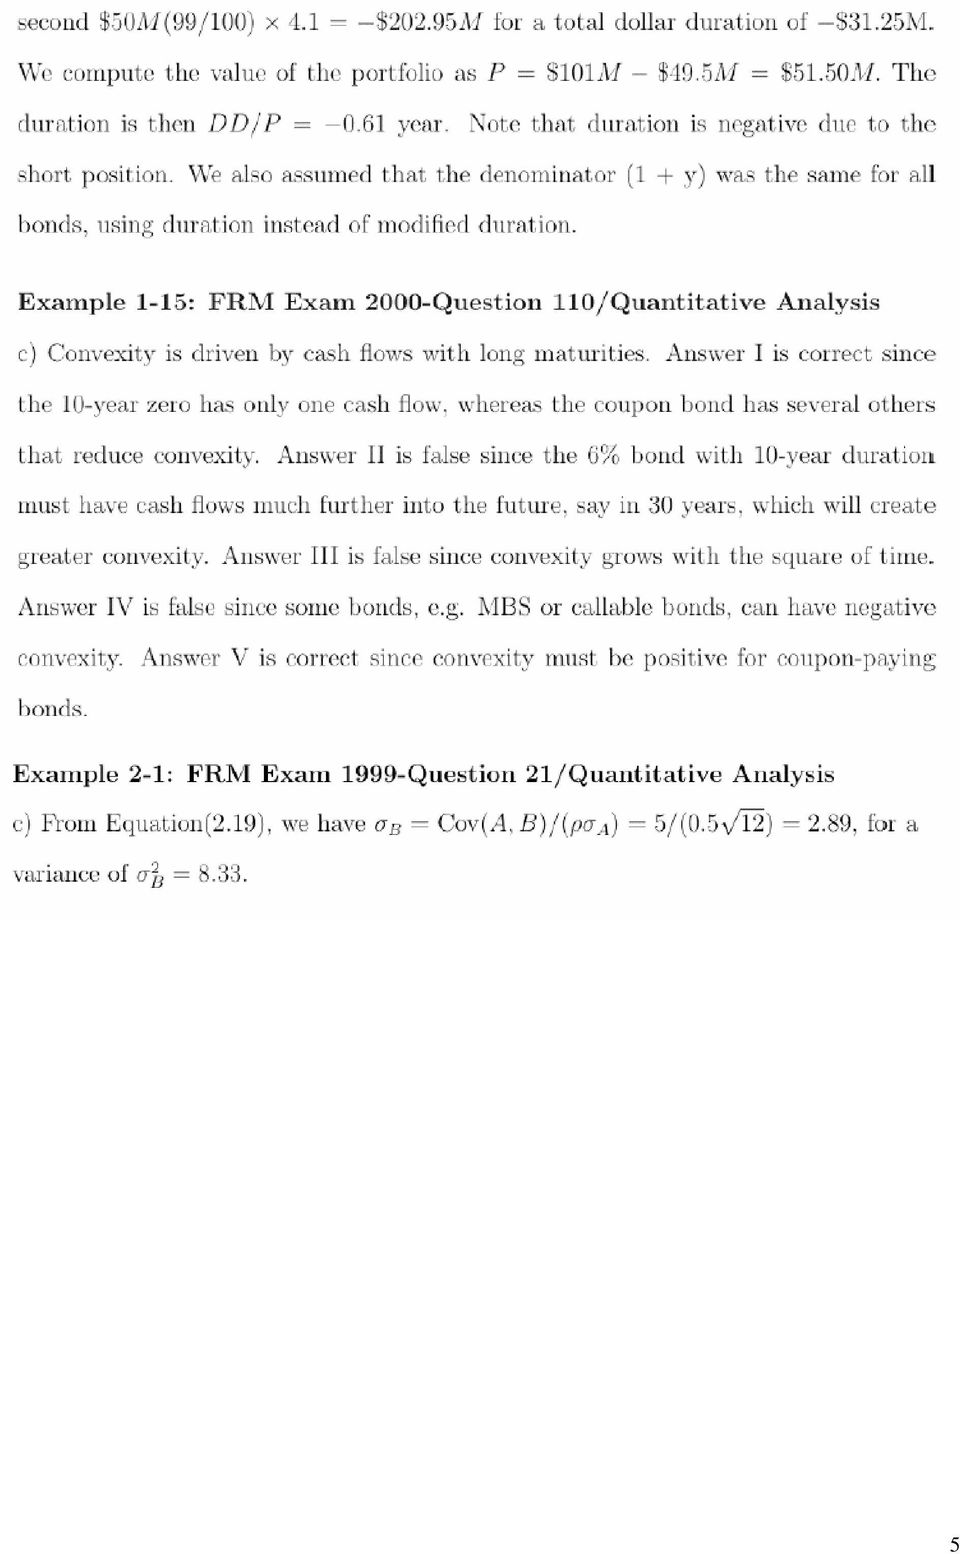 Financial Risk Management Exam Sample Questions/Answers - PDF